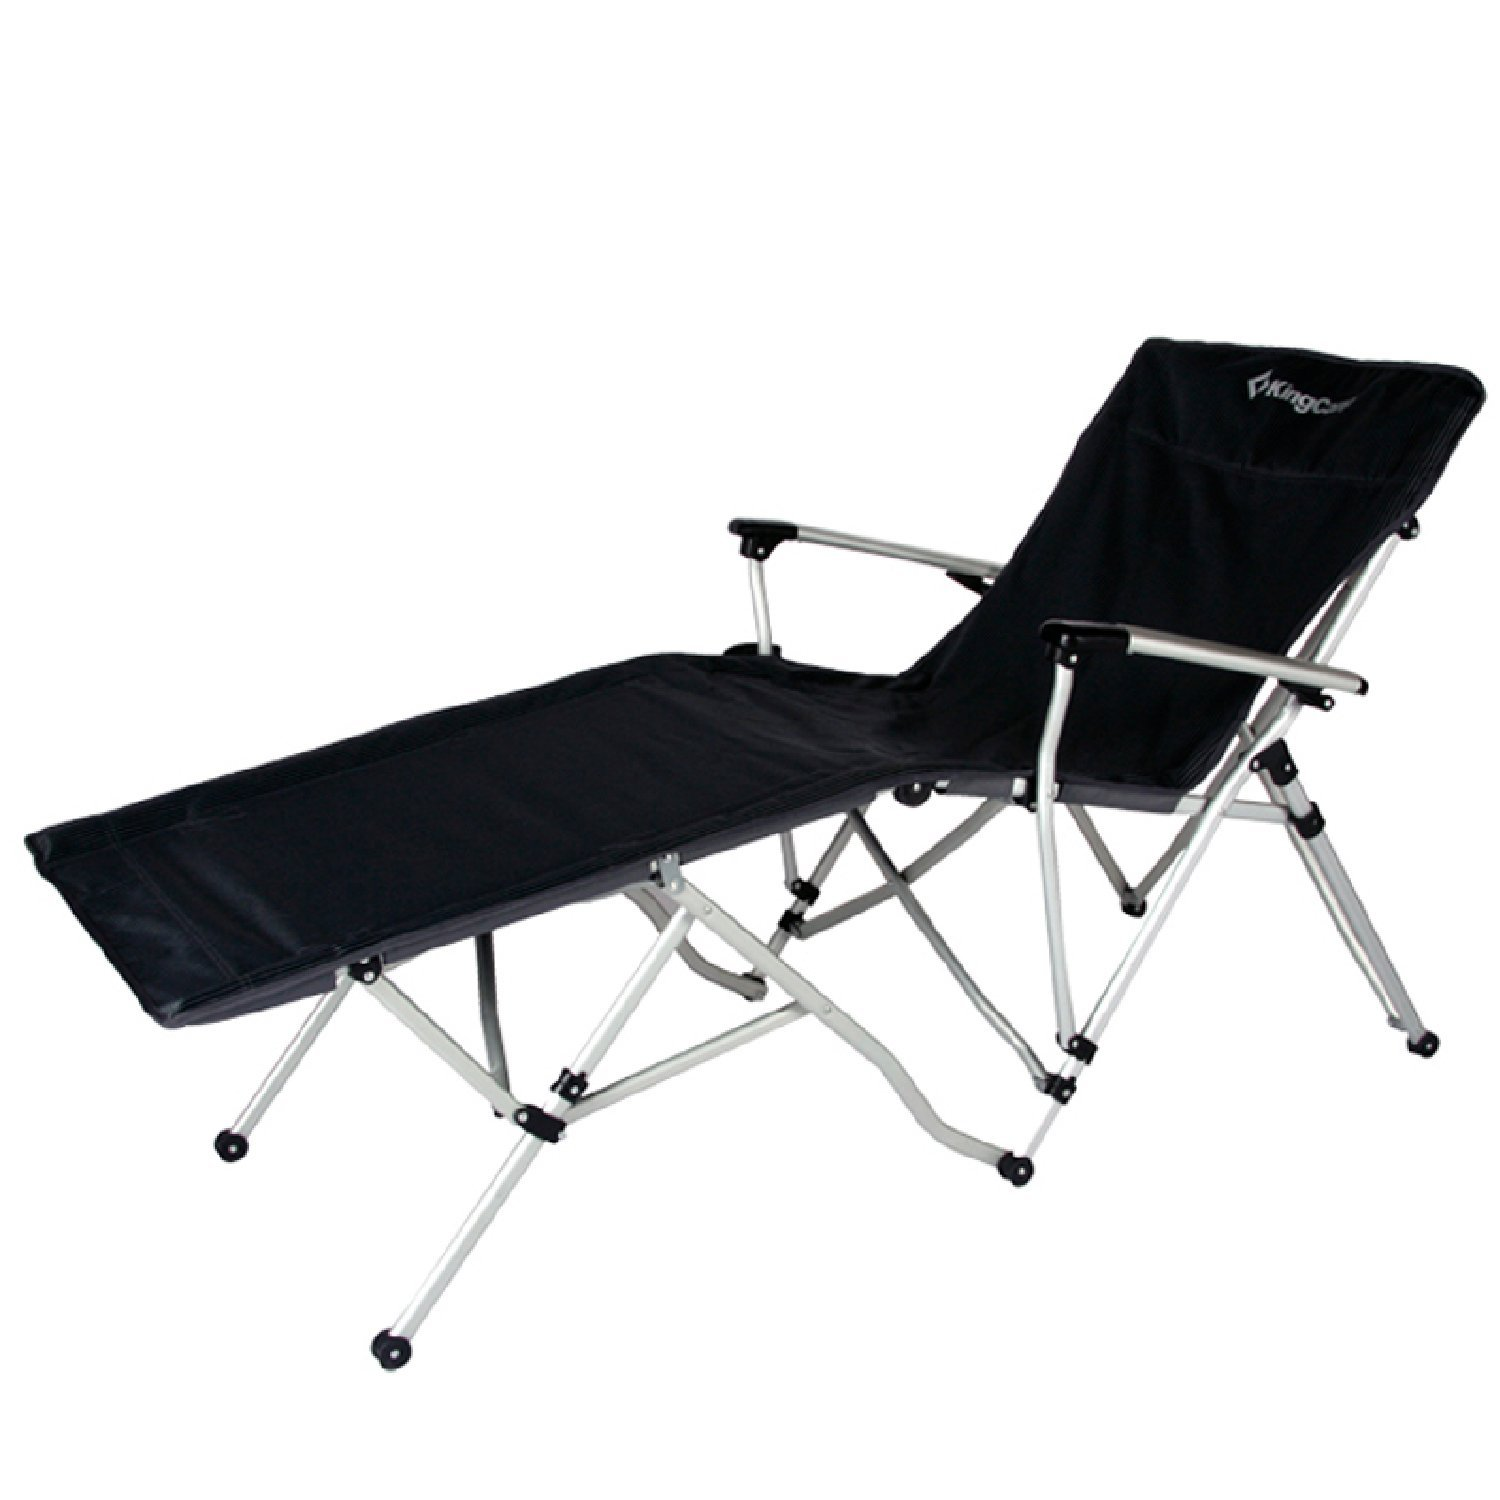 KingCamp Zero Gravity Chair Oversized XL Folding Patio Lounge Chaise Bed  With Cup Holder Optimal